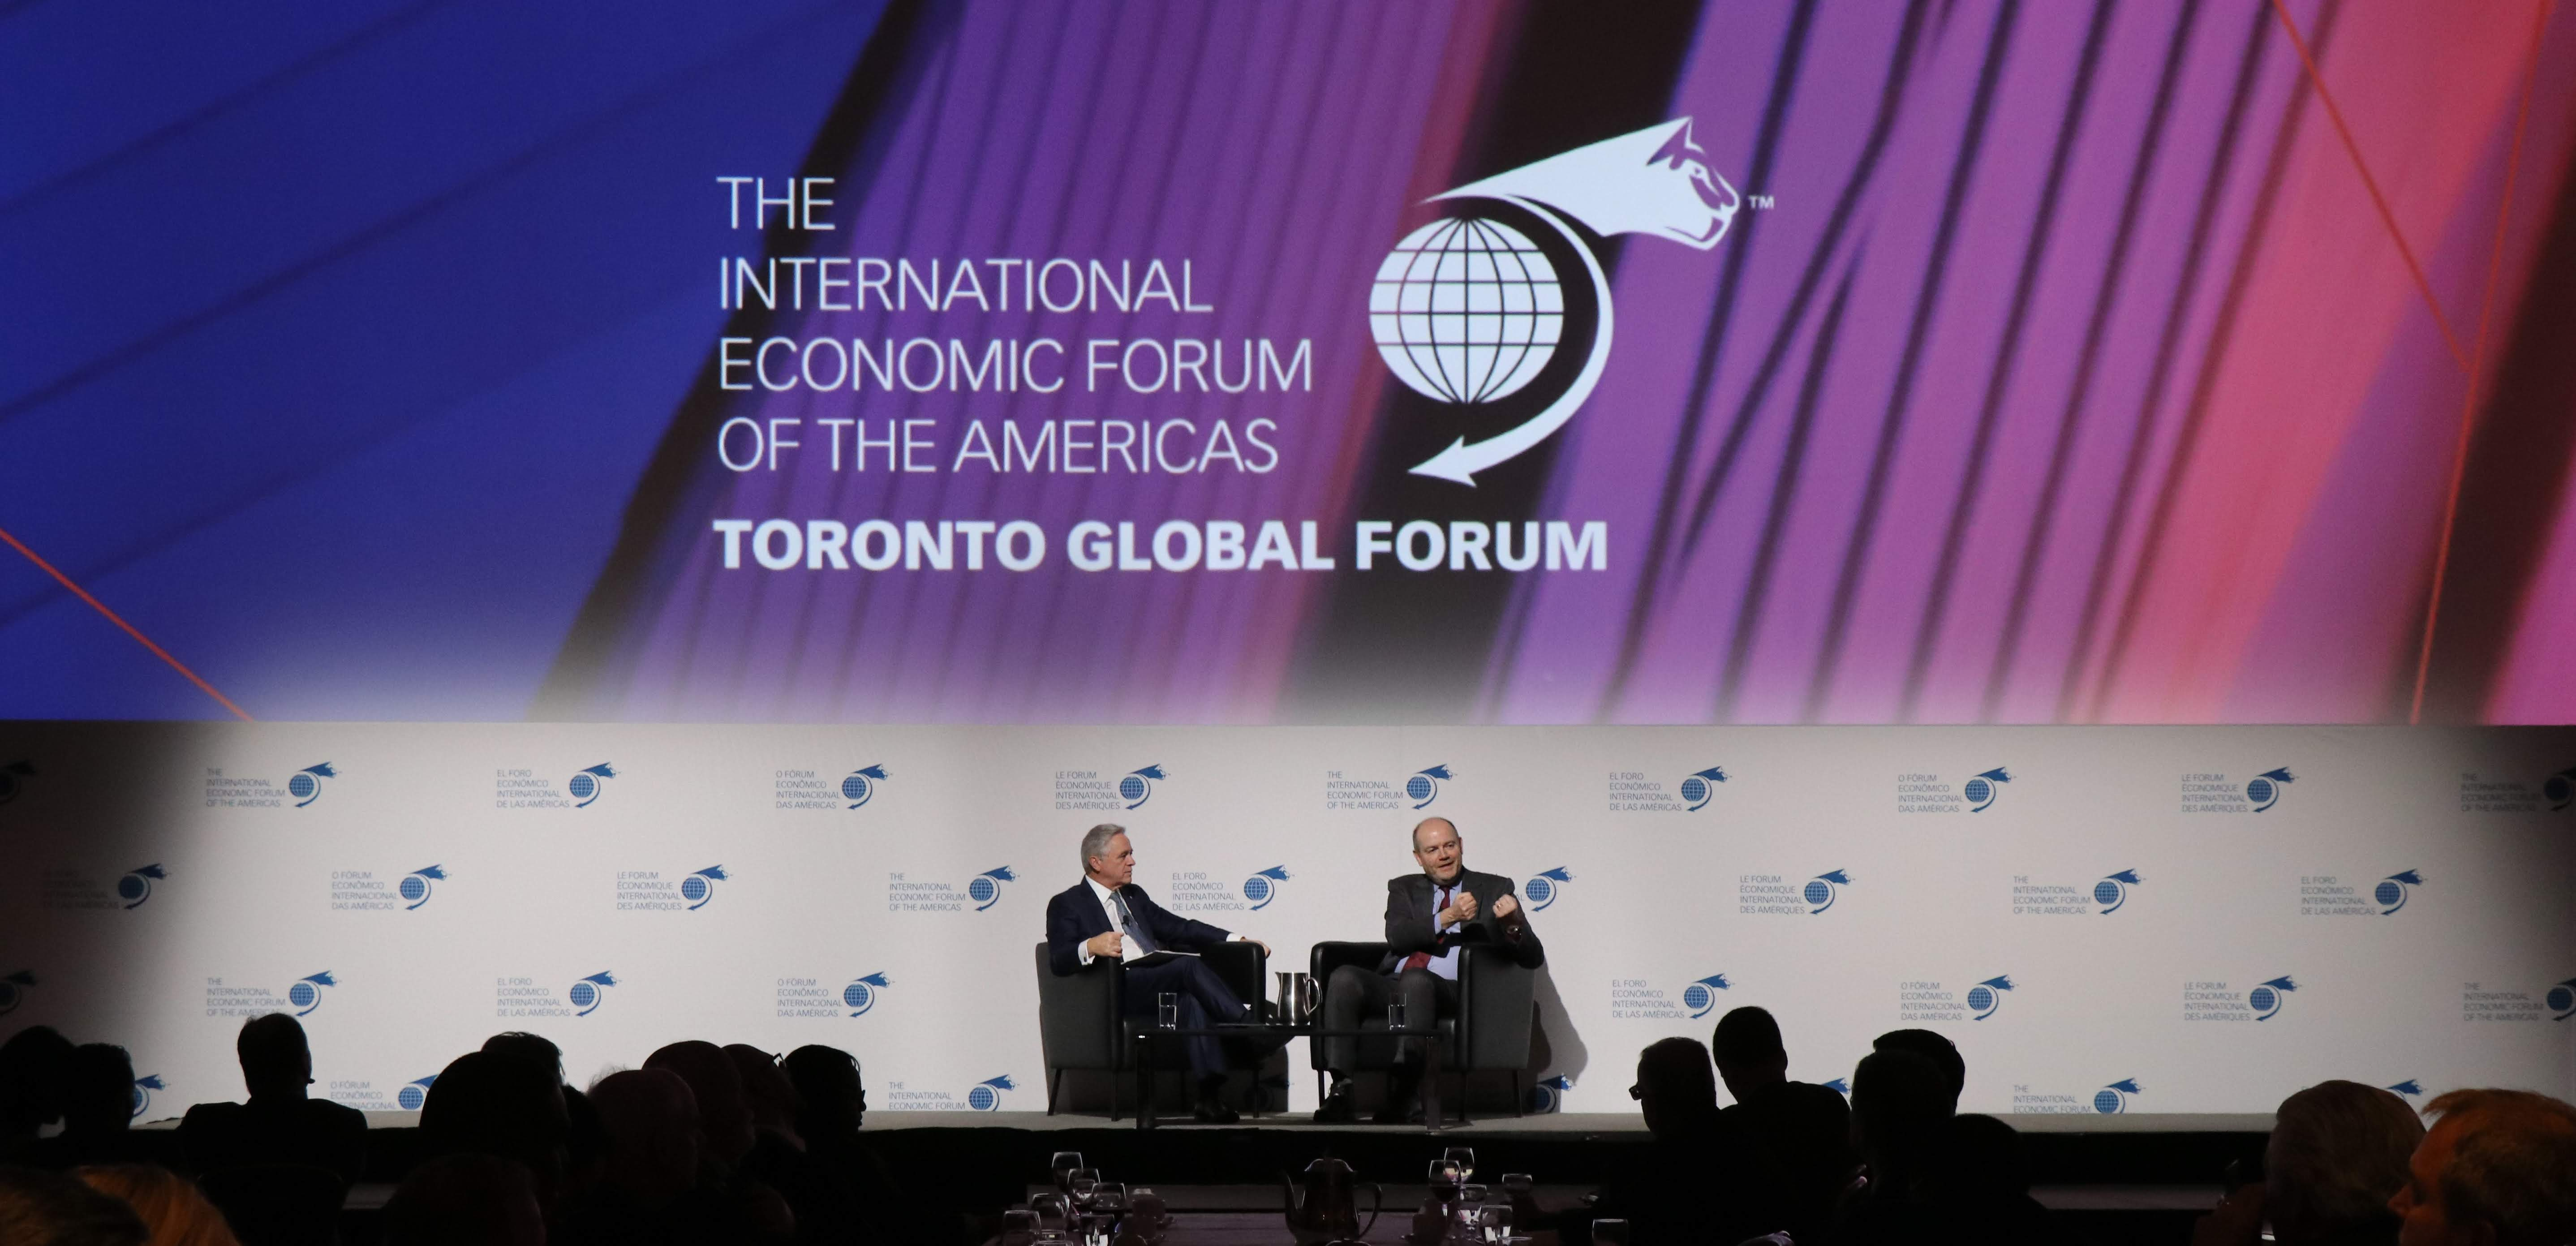 Luncheon - Mark Thompson, President and Chief Executive Officer, The New York Times Company interviewed by Brian V. Tobin, Vice-Chair, BMO Financial Group